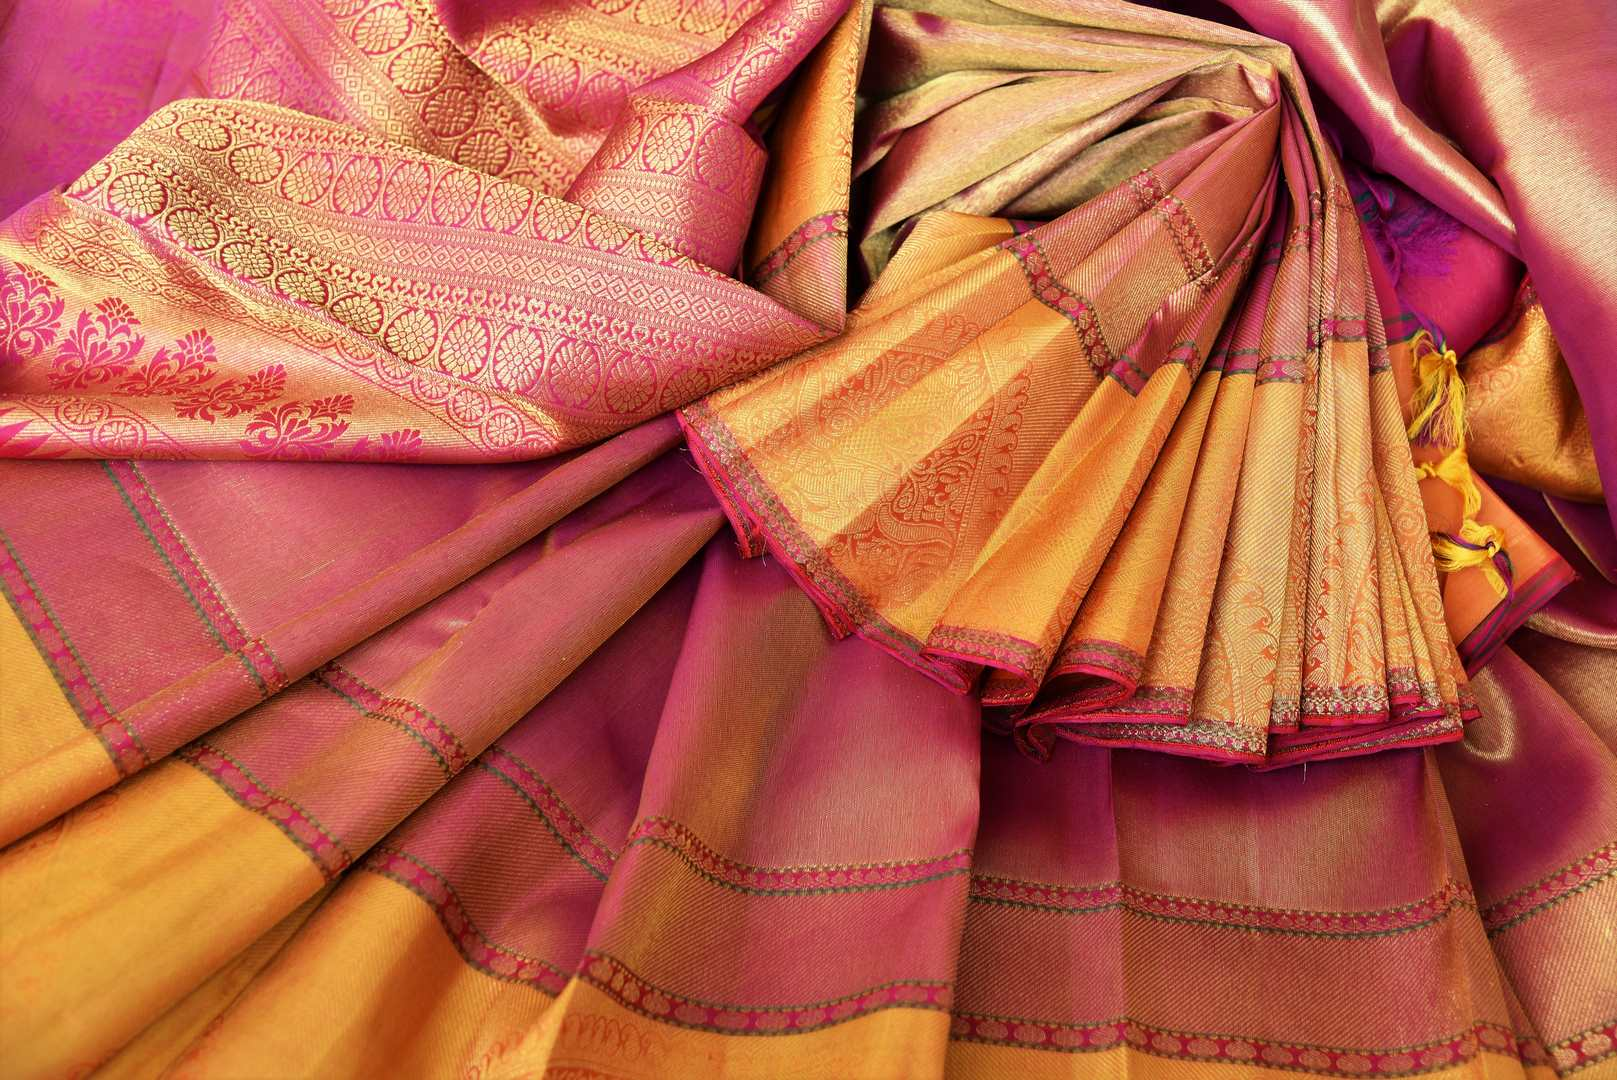 Don this gorgeous handwoven pure kanjeevaram silk sari with zari weave on the border complemented by a stunning contrasted blouse to weddings and festivities. Celebrate the season of weddings and shop handloom sarees, designer silk saris, ikkat sarees, banarsi silk sarees online or visit Pure Elegance store in USA. -details